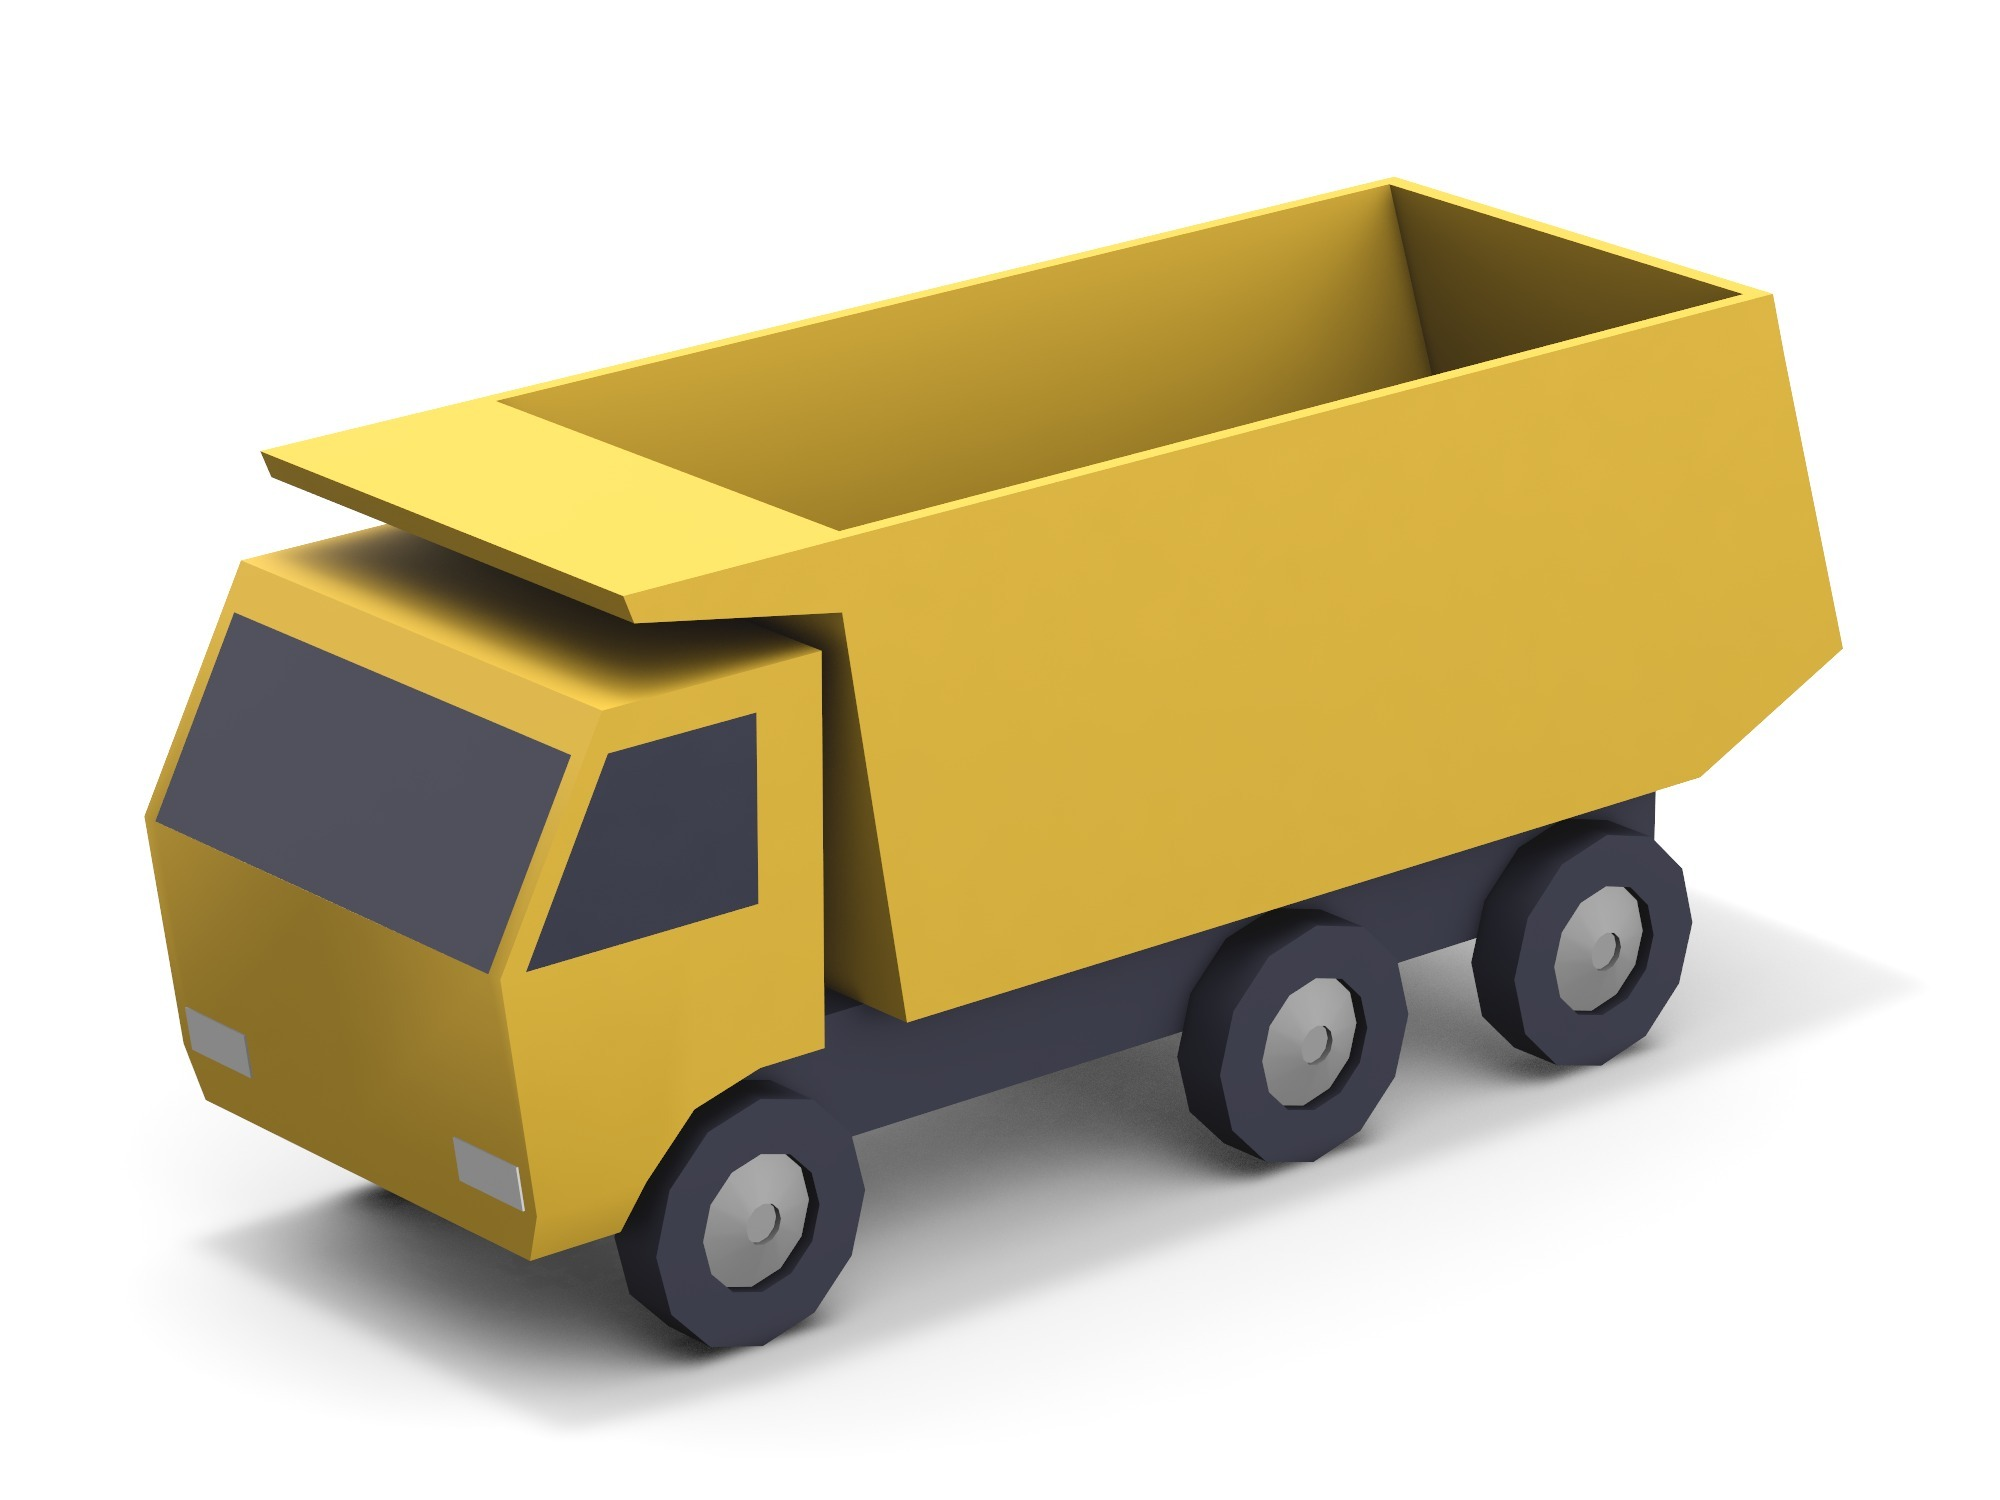 Dump truck - 3D design by assets Aug 17, 2018